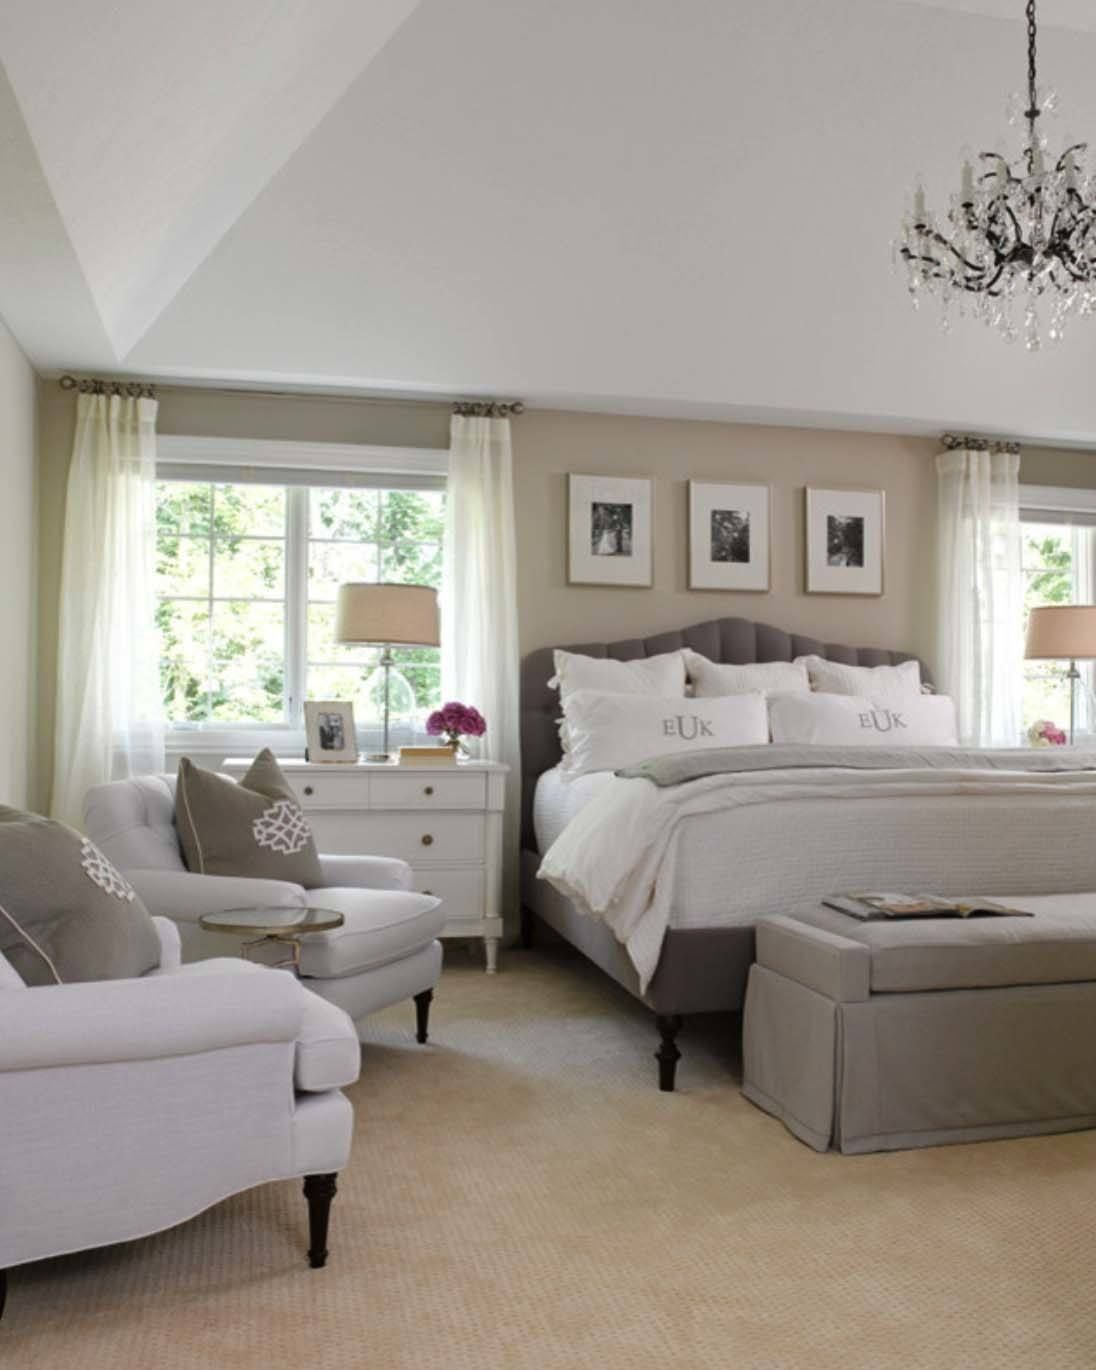 Master bedroom addition   Spectacular neutral bedroom schemes for relaxation  Neutral